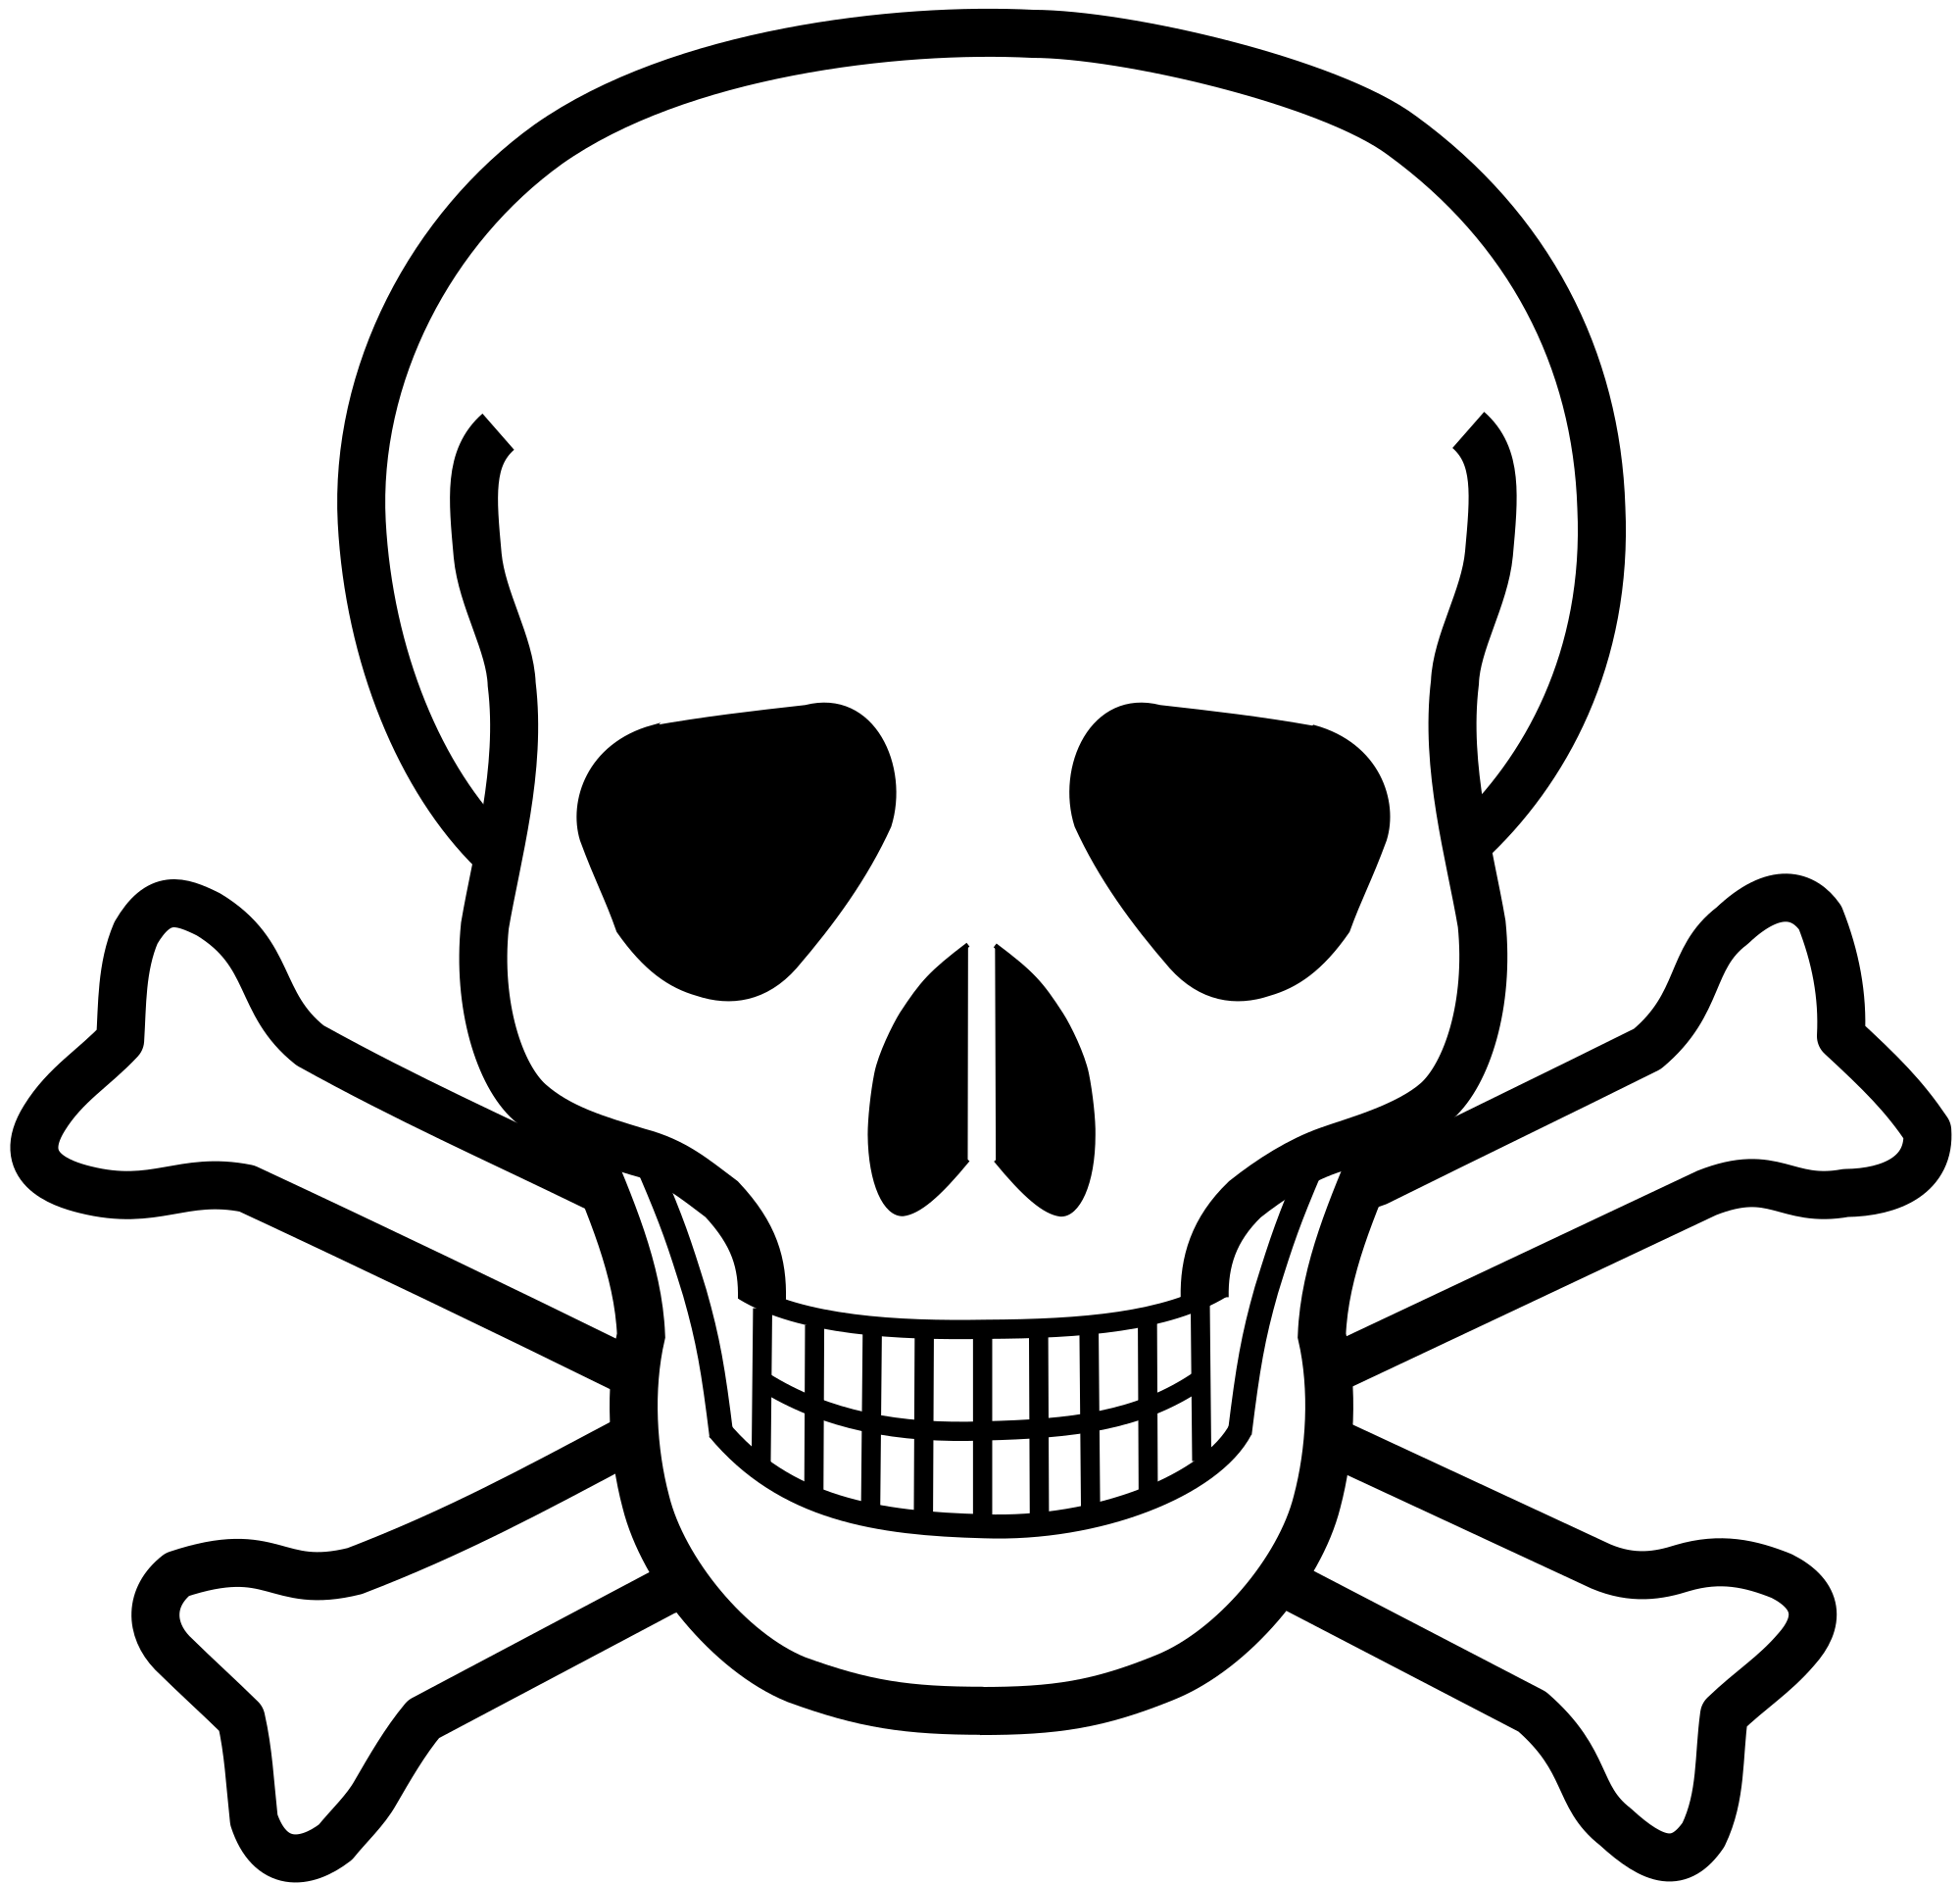 Drawing at getdrawings com. Skull and bones png graphic freeuse library